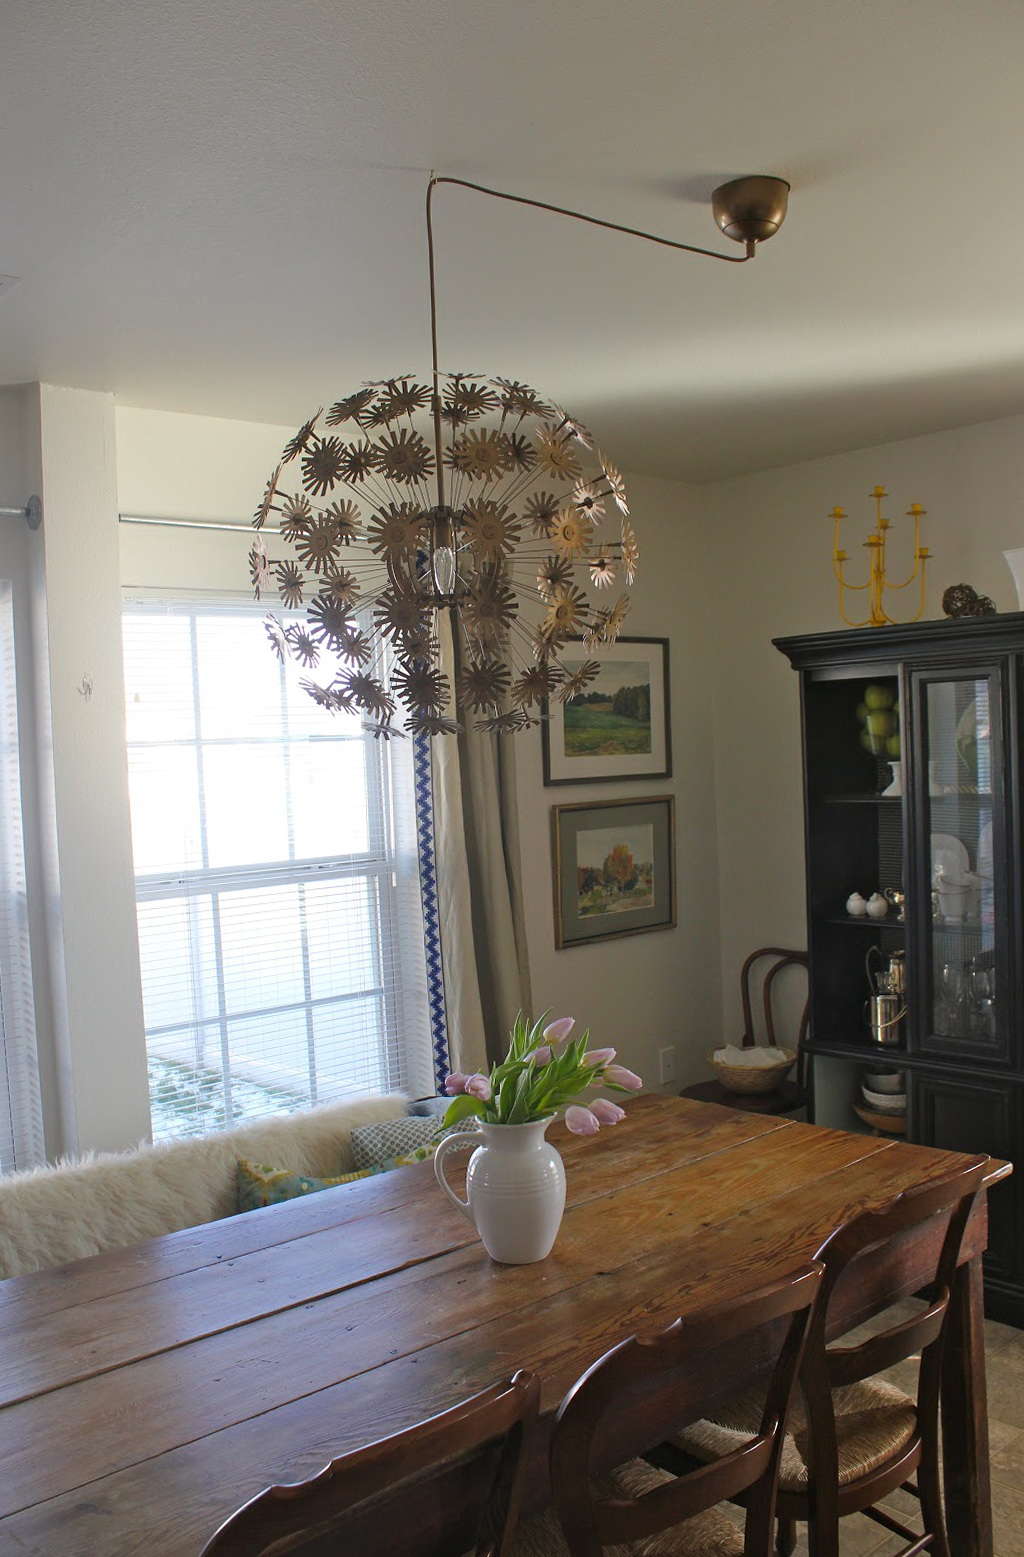 Kitchen Chandelier Over Table